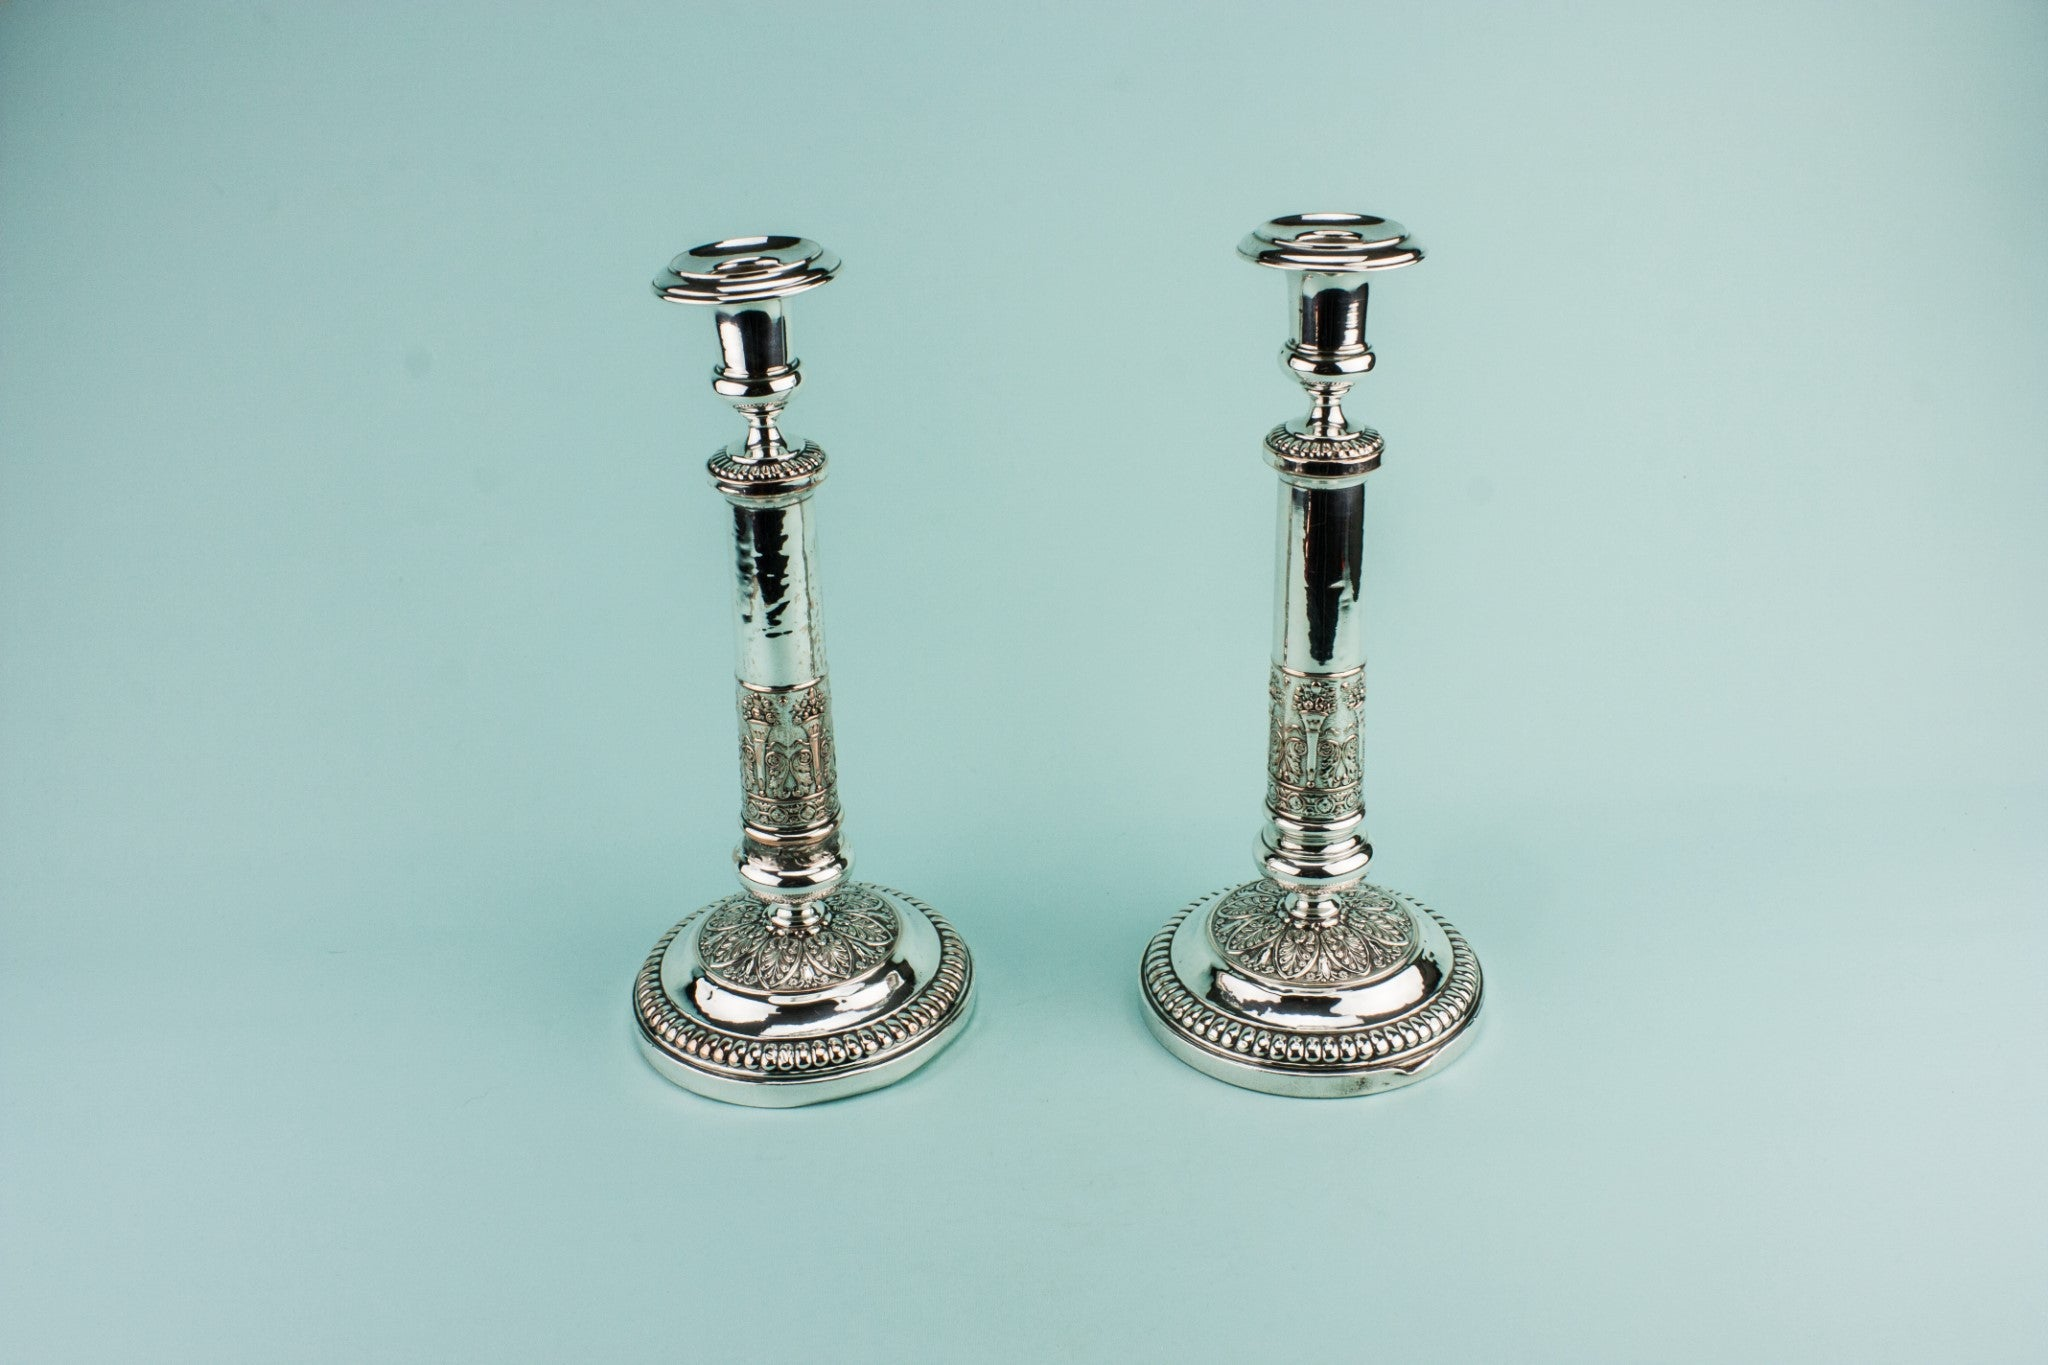 2 tall candlesticks